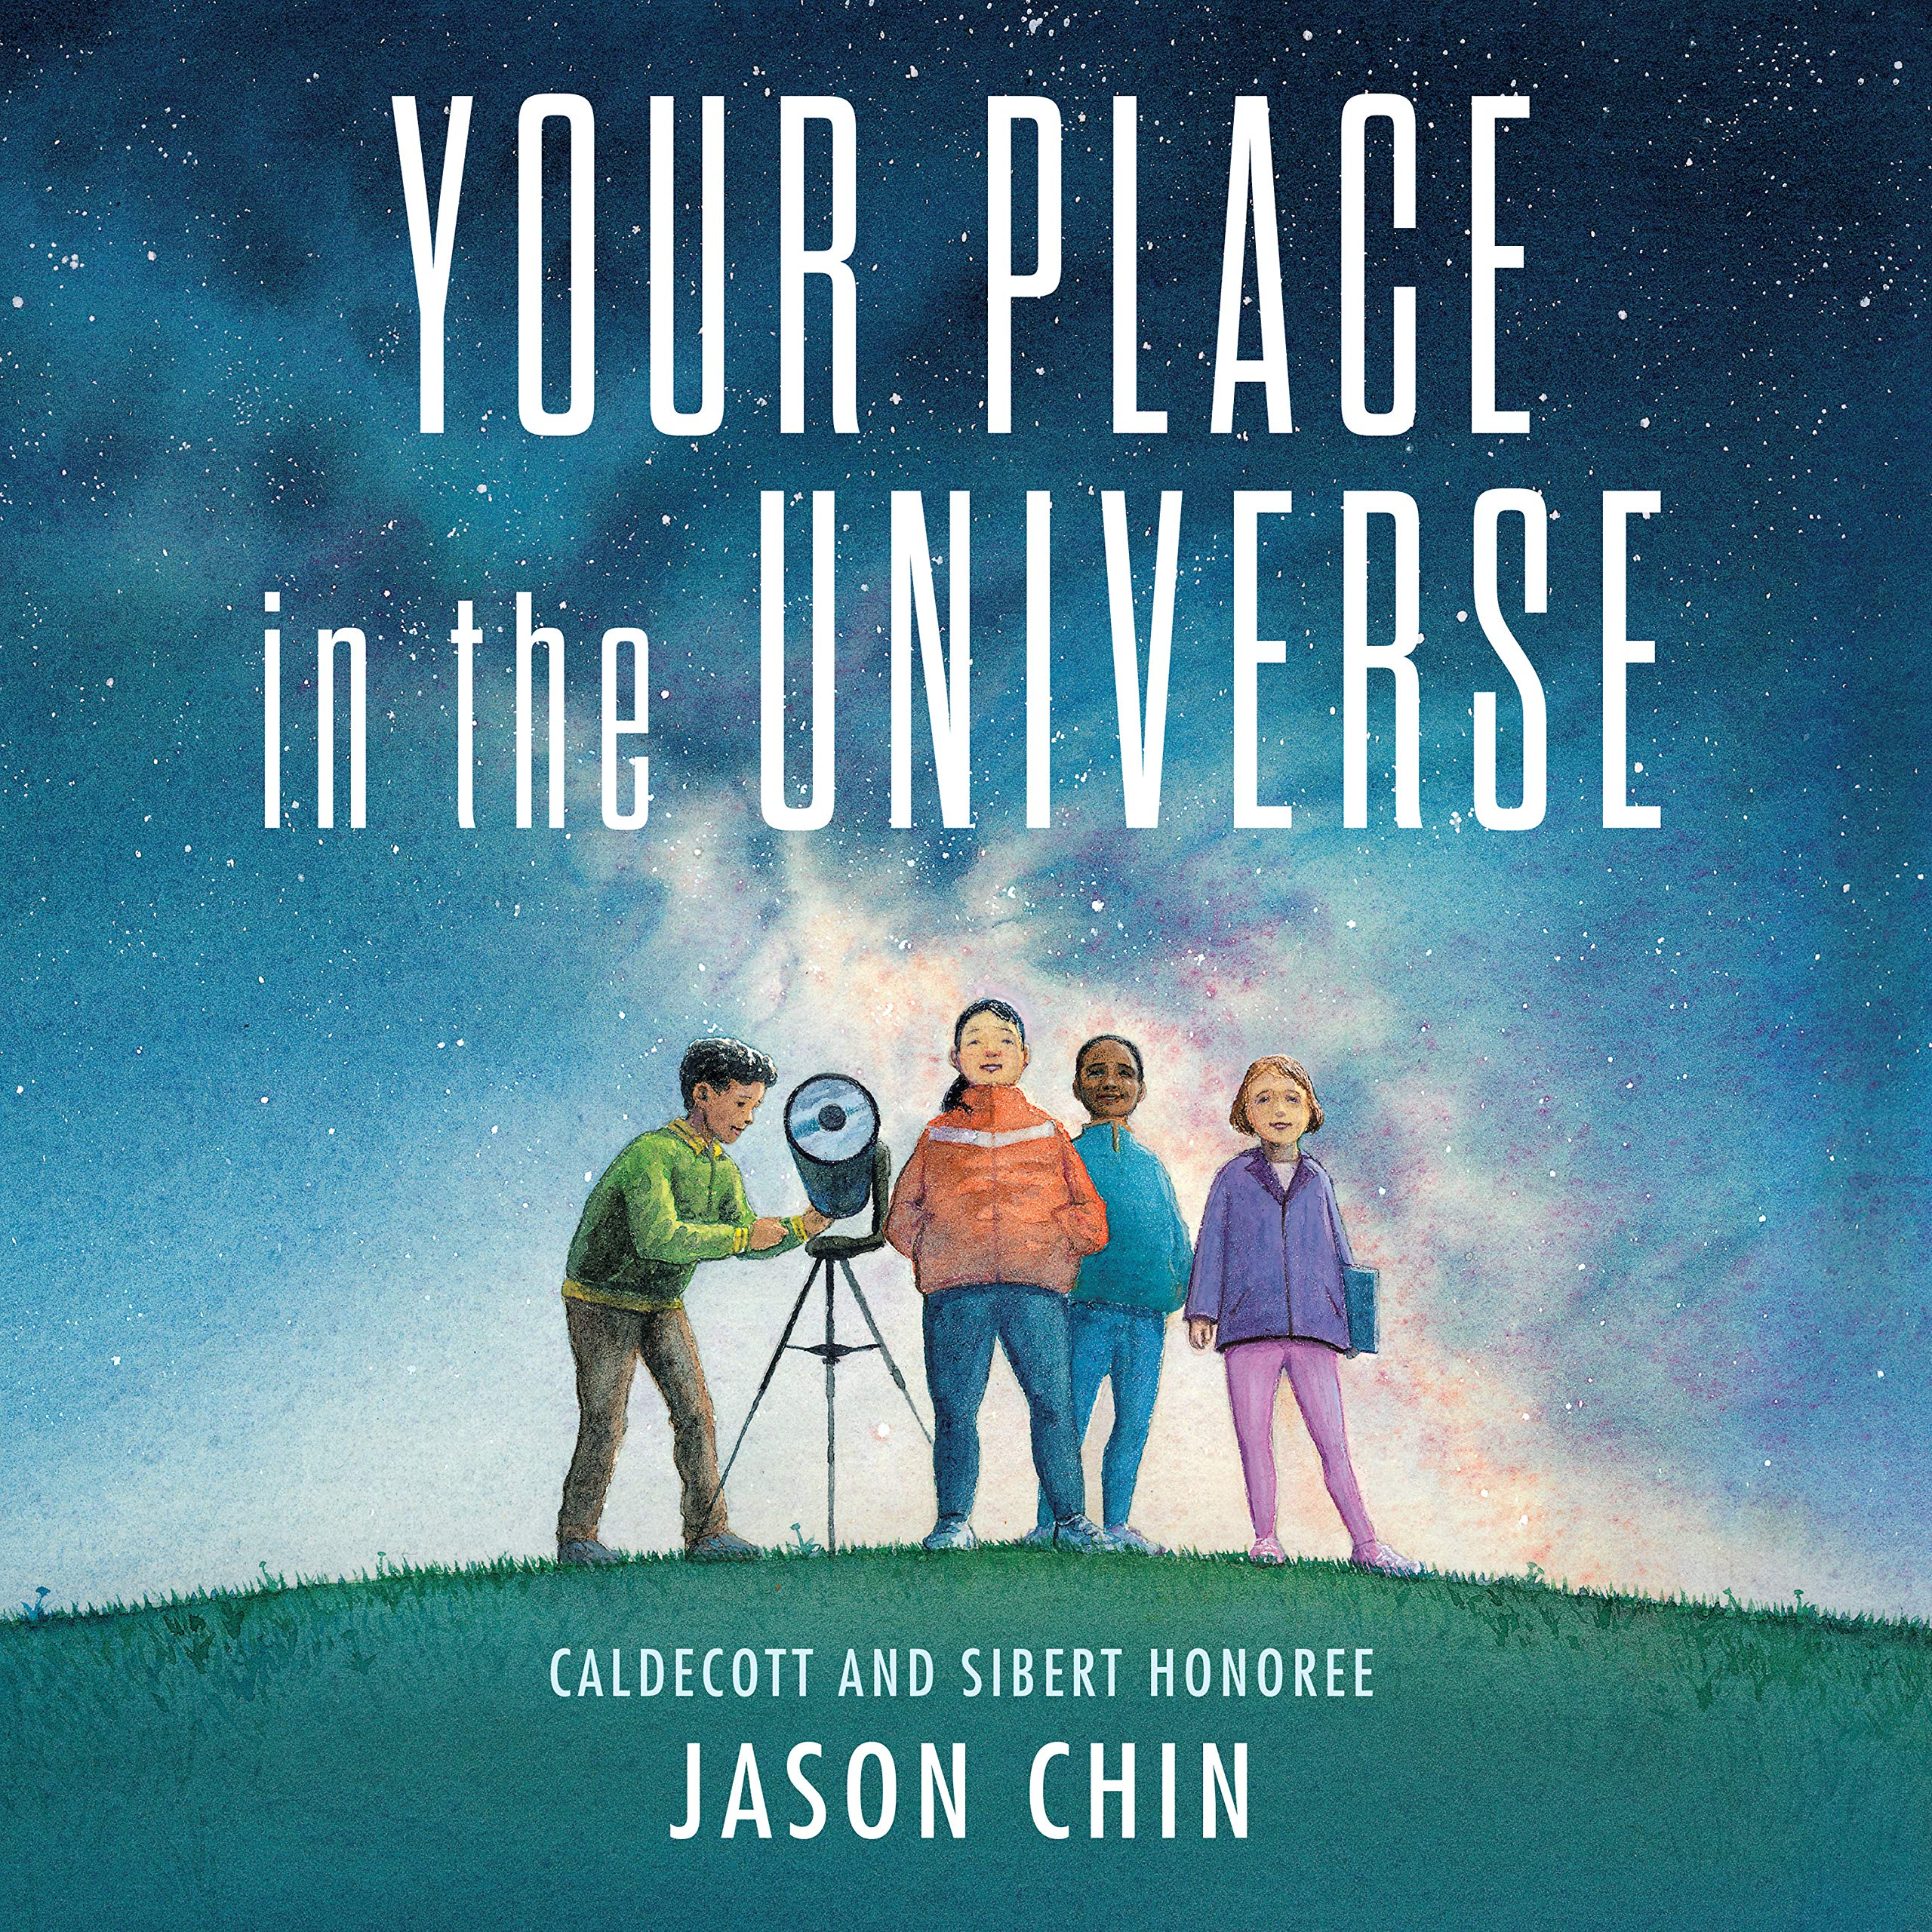 """Cover of """"Your Place in the Universe"""" by Jason Chin"""